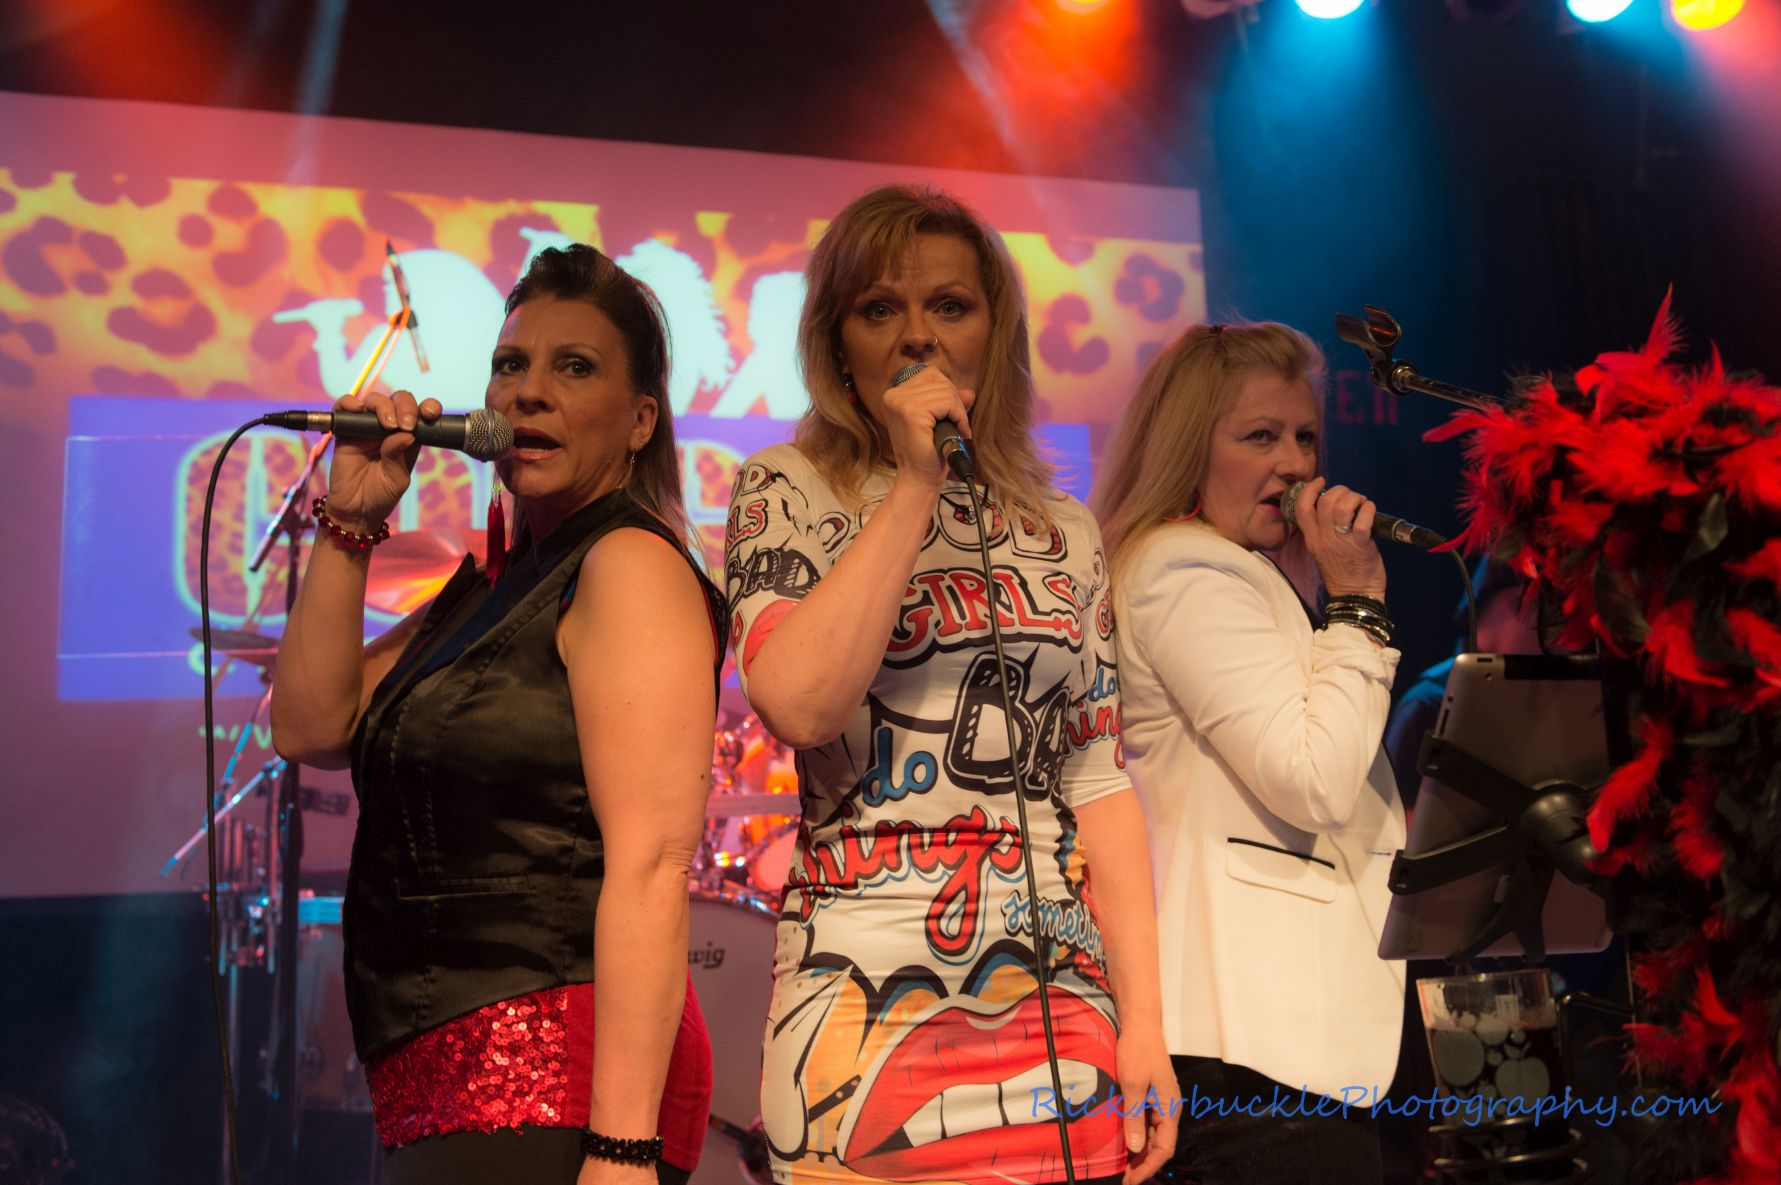 The Cougar Chicks - Greenfield's 07